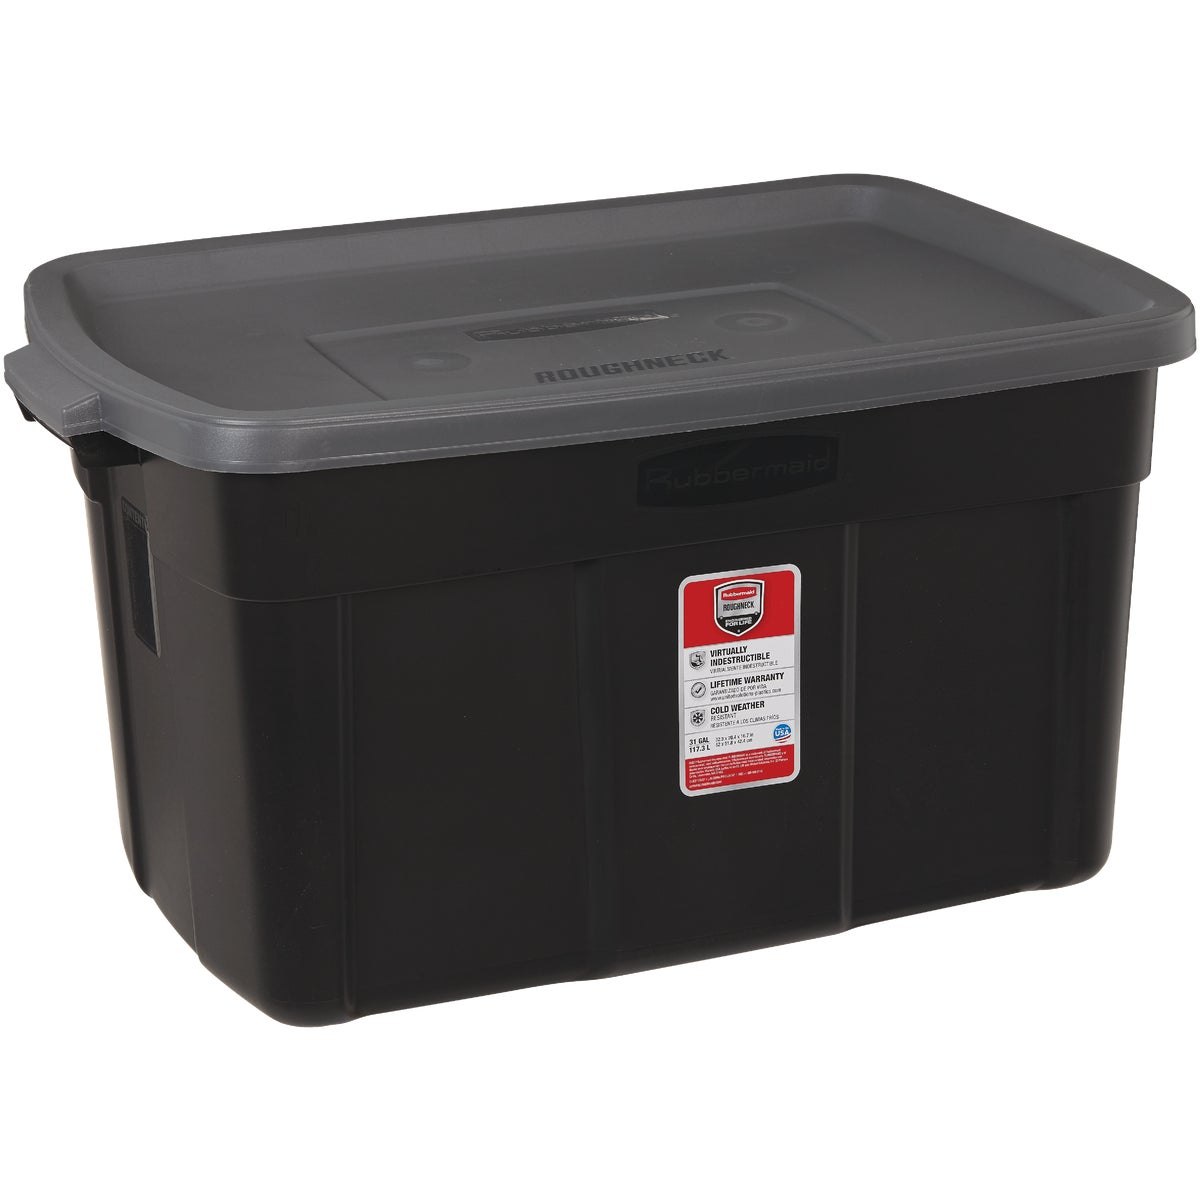 31GAL INDIGO STORAGE BOX - 2244CPDIM by Rubbermaid Home